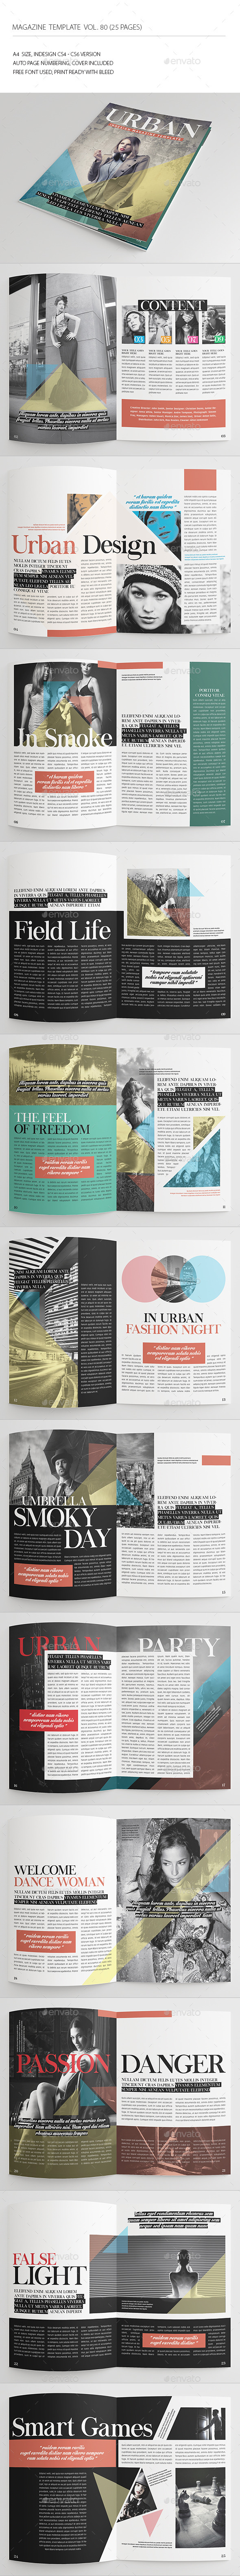 25 Pages Urban Magazine Vol80 - Magazines Print Templates